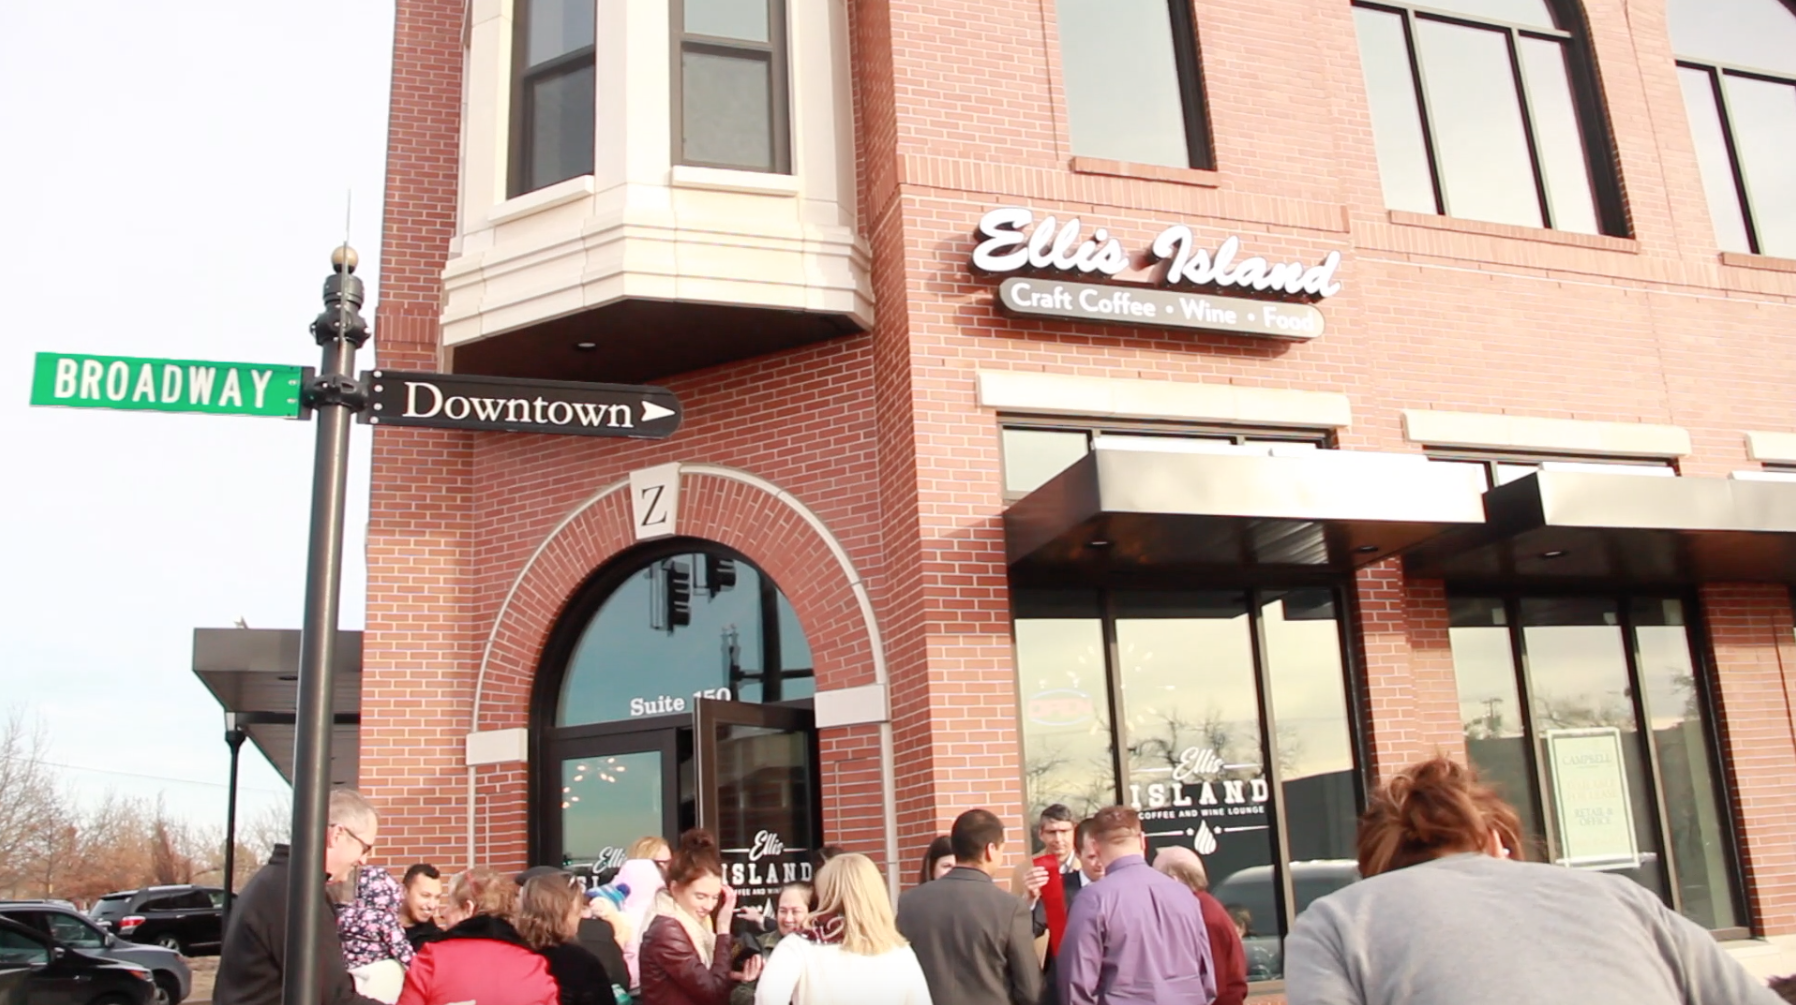 Ellis Island Opens in Downtown Edmond